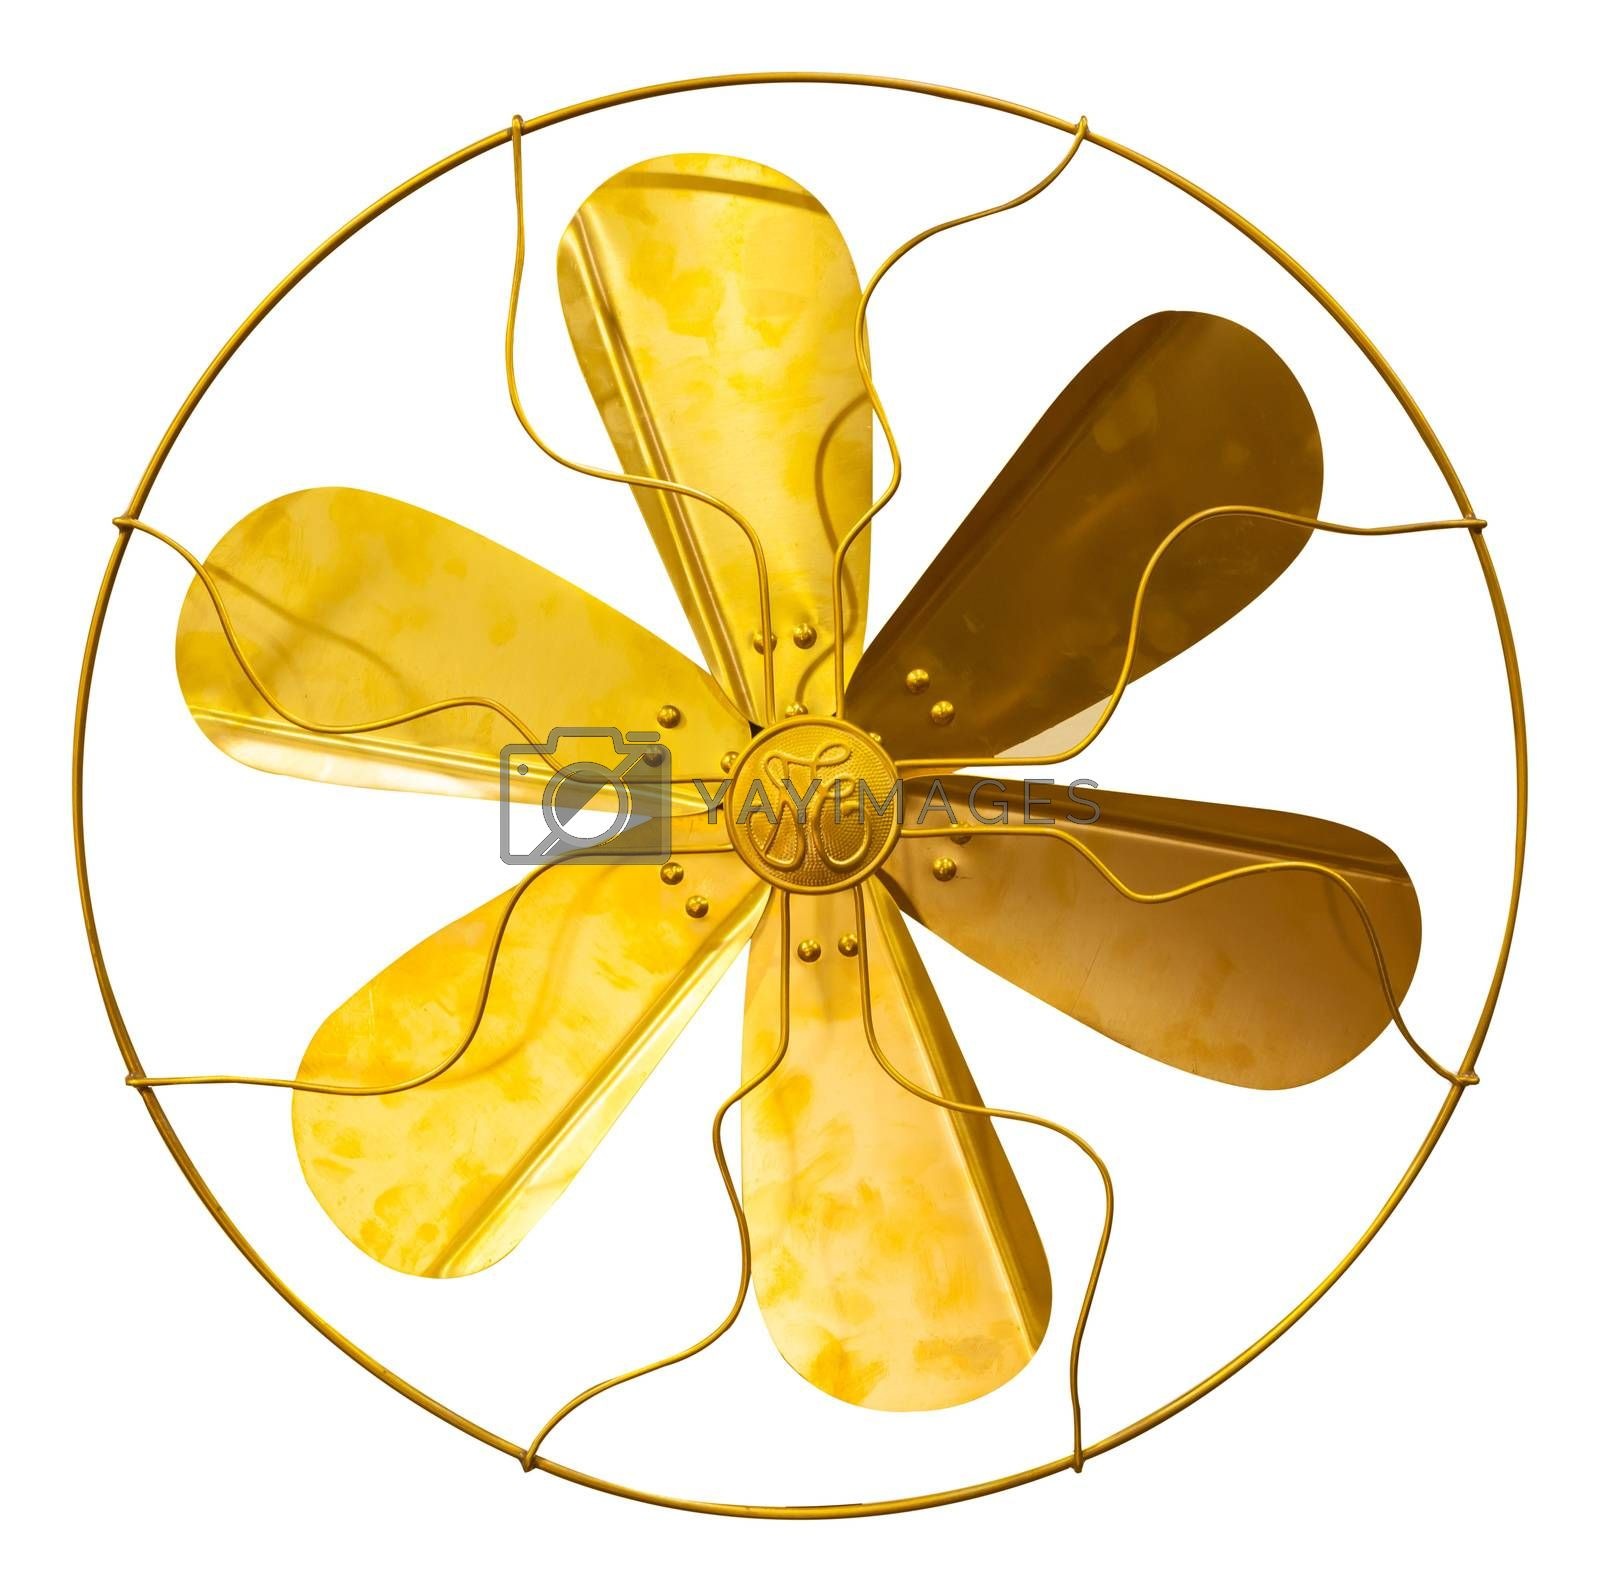 Beautiful vintage gold antique brass fan isolated on white